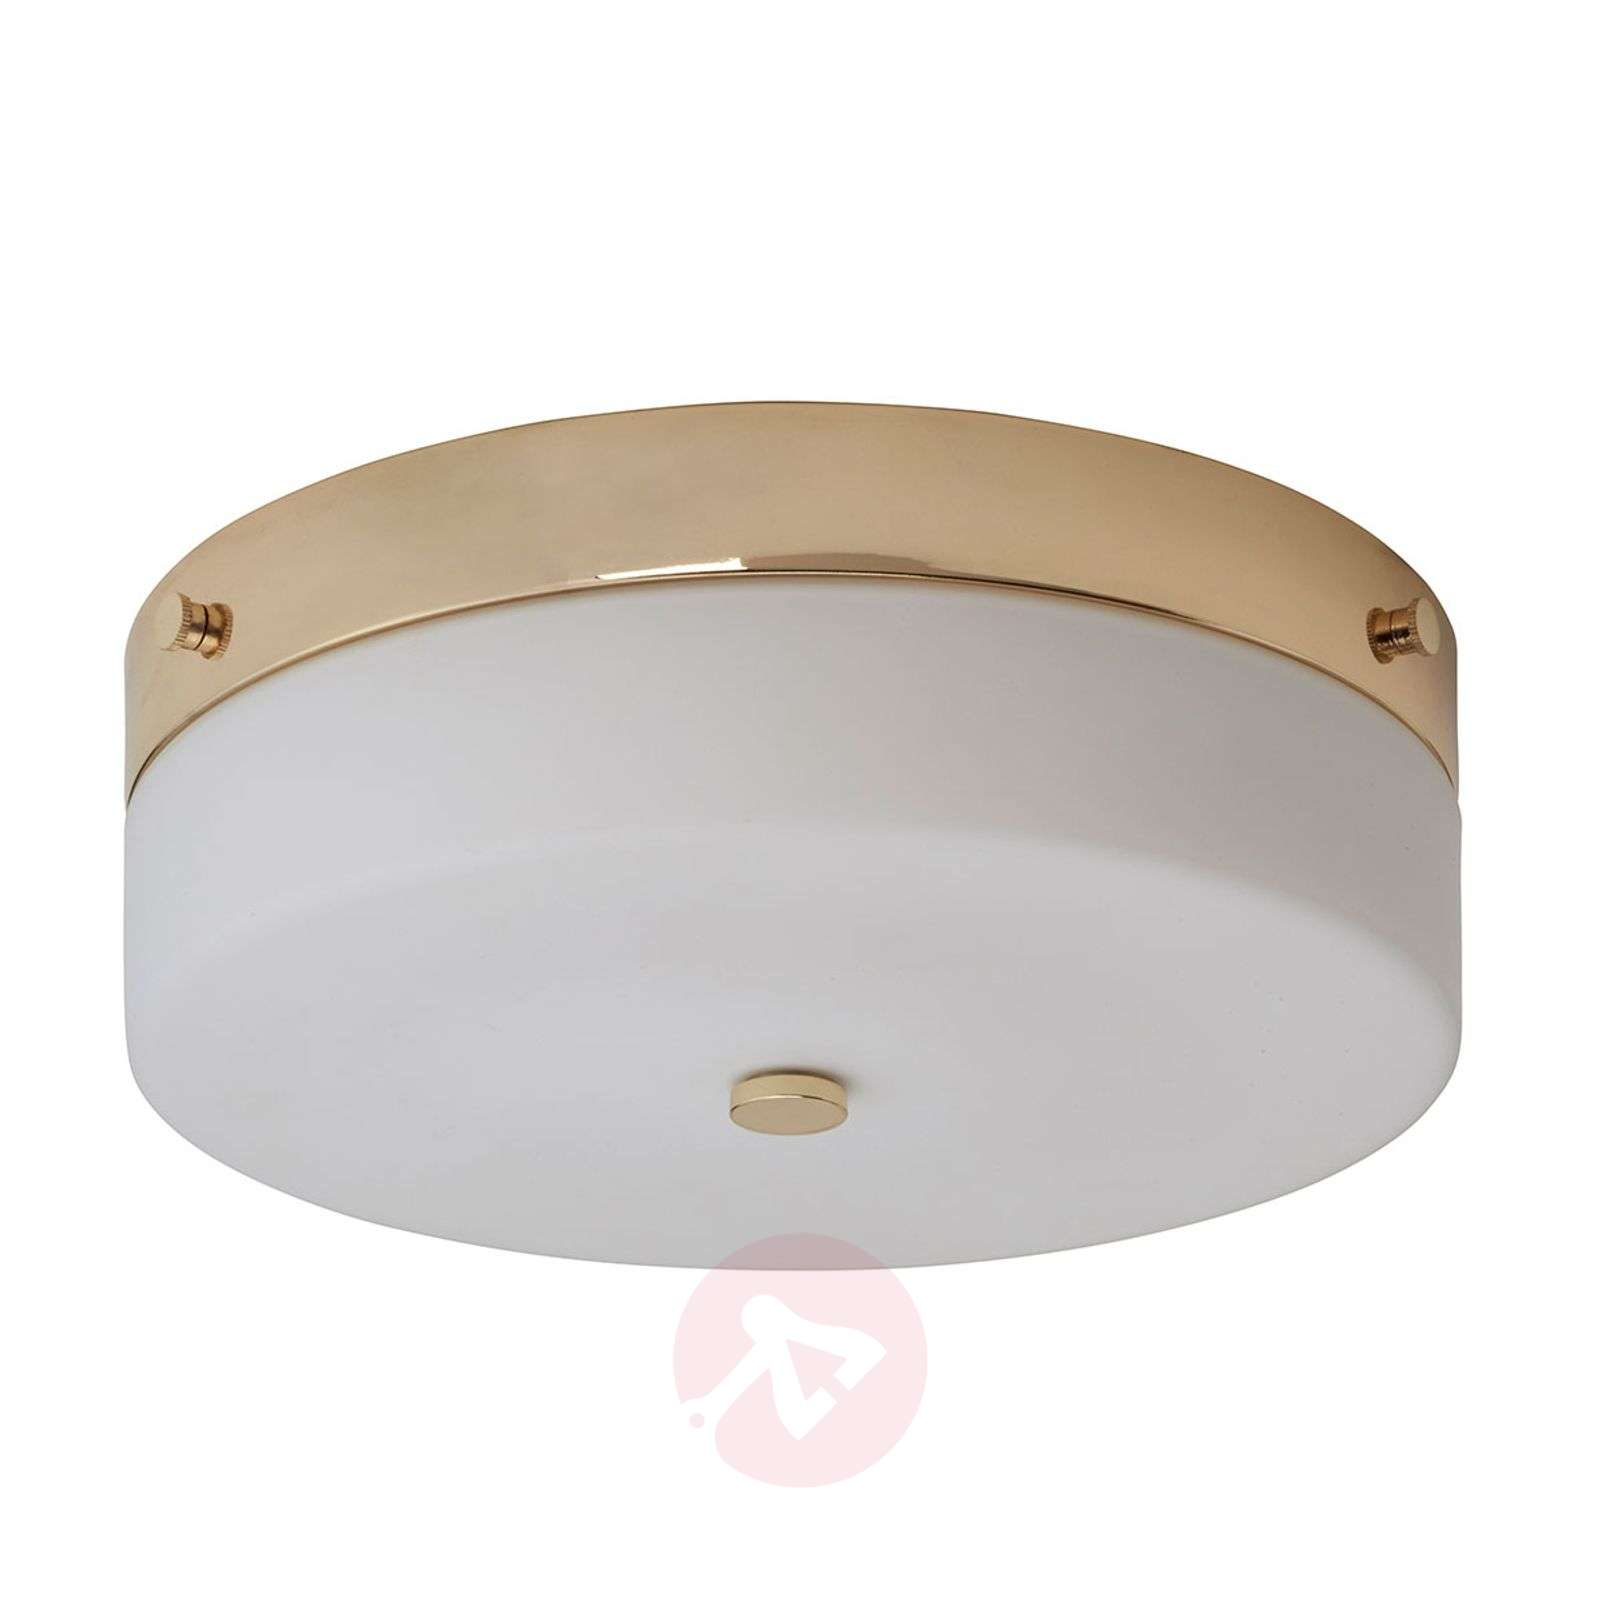 Spray water-protected LED ceiling lamp Tamar, gold-3048877-01